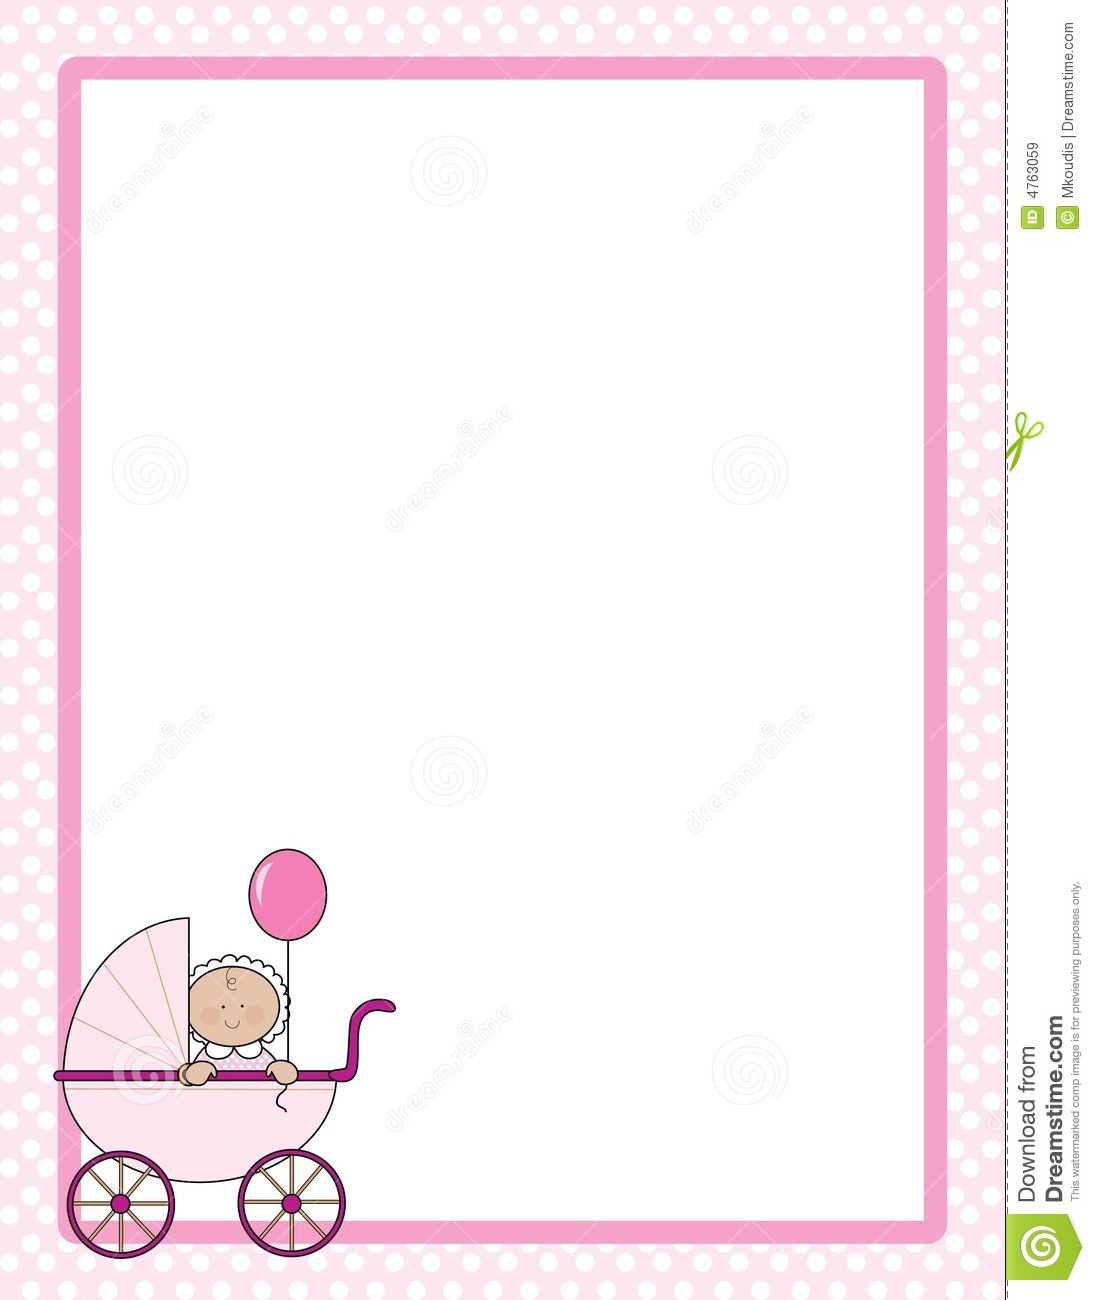 Baby Border Clipart.